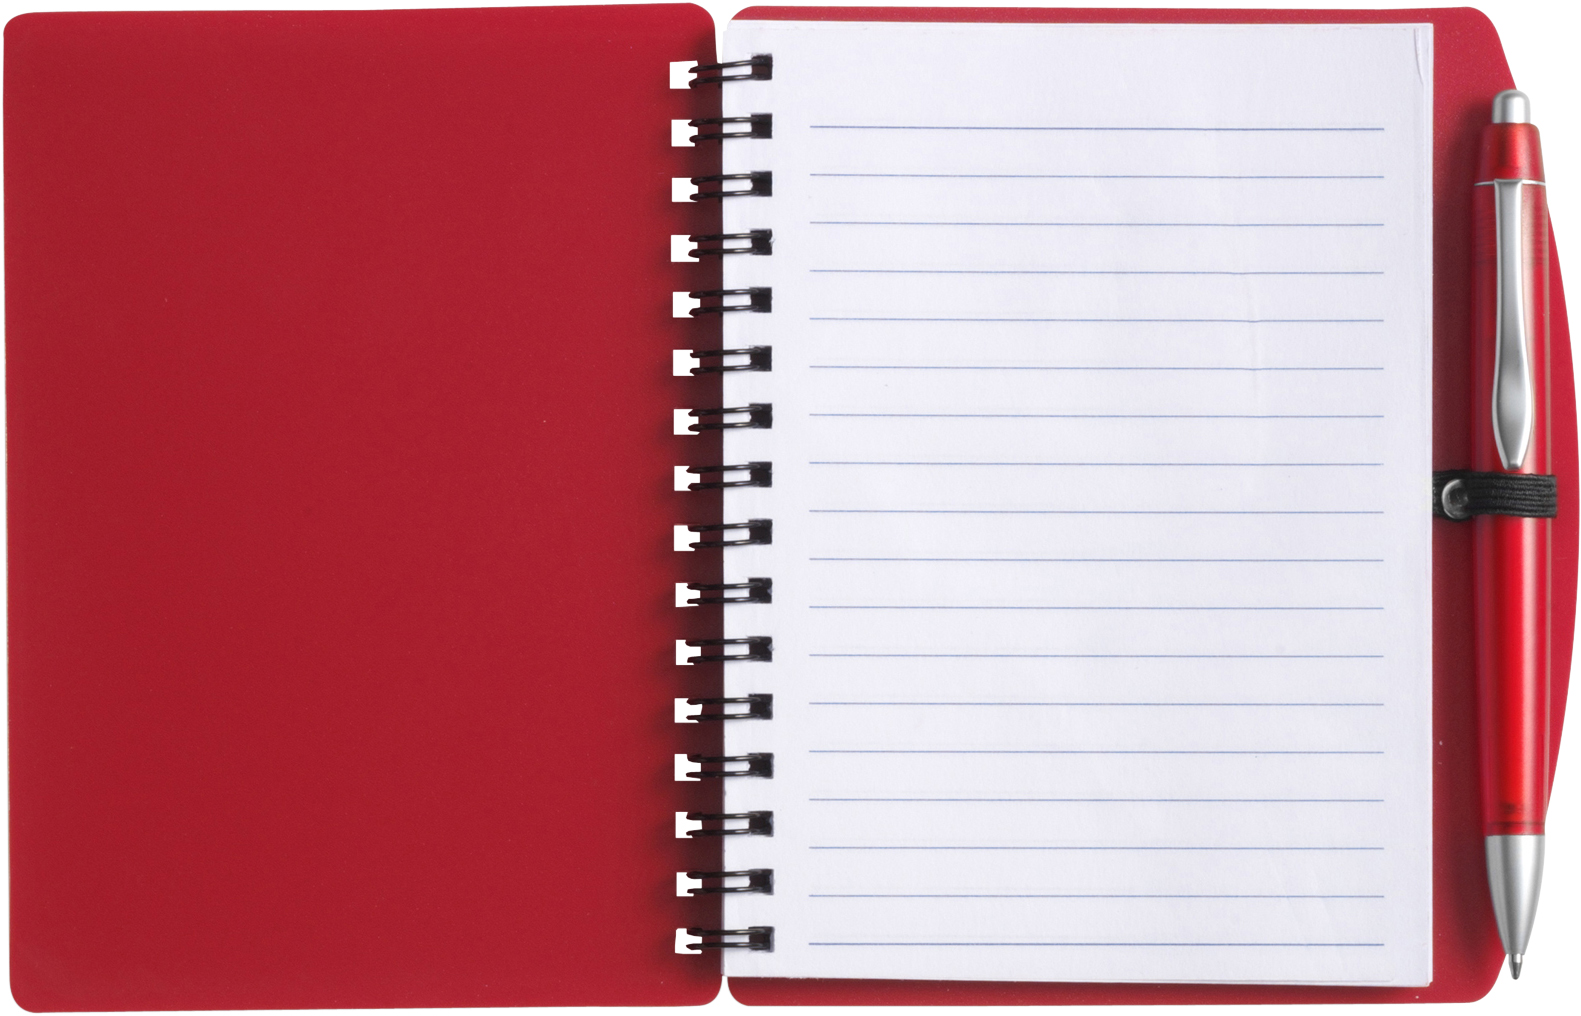 Promotional A6 Spiral notebook